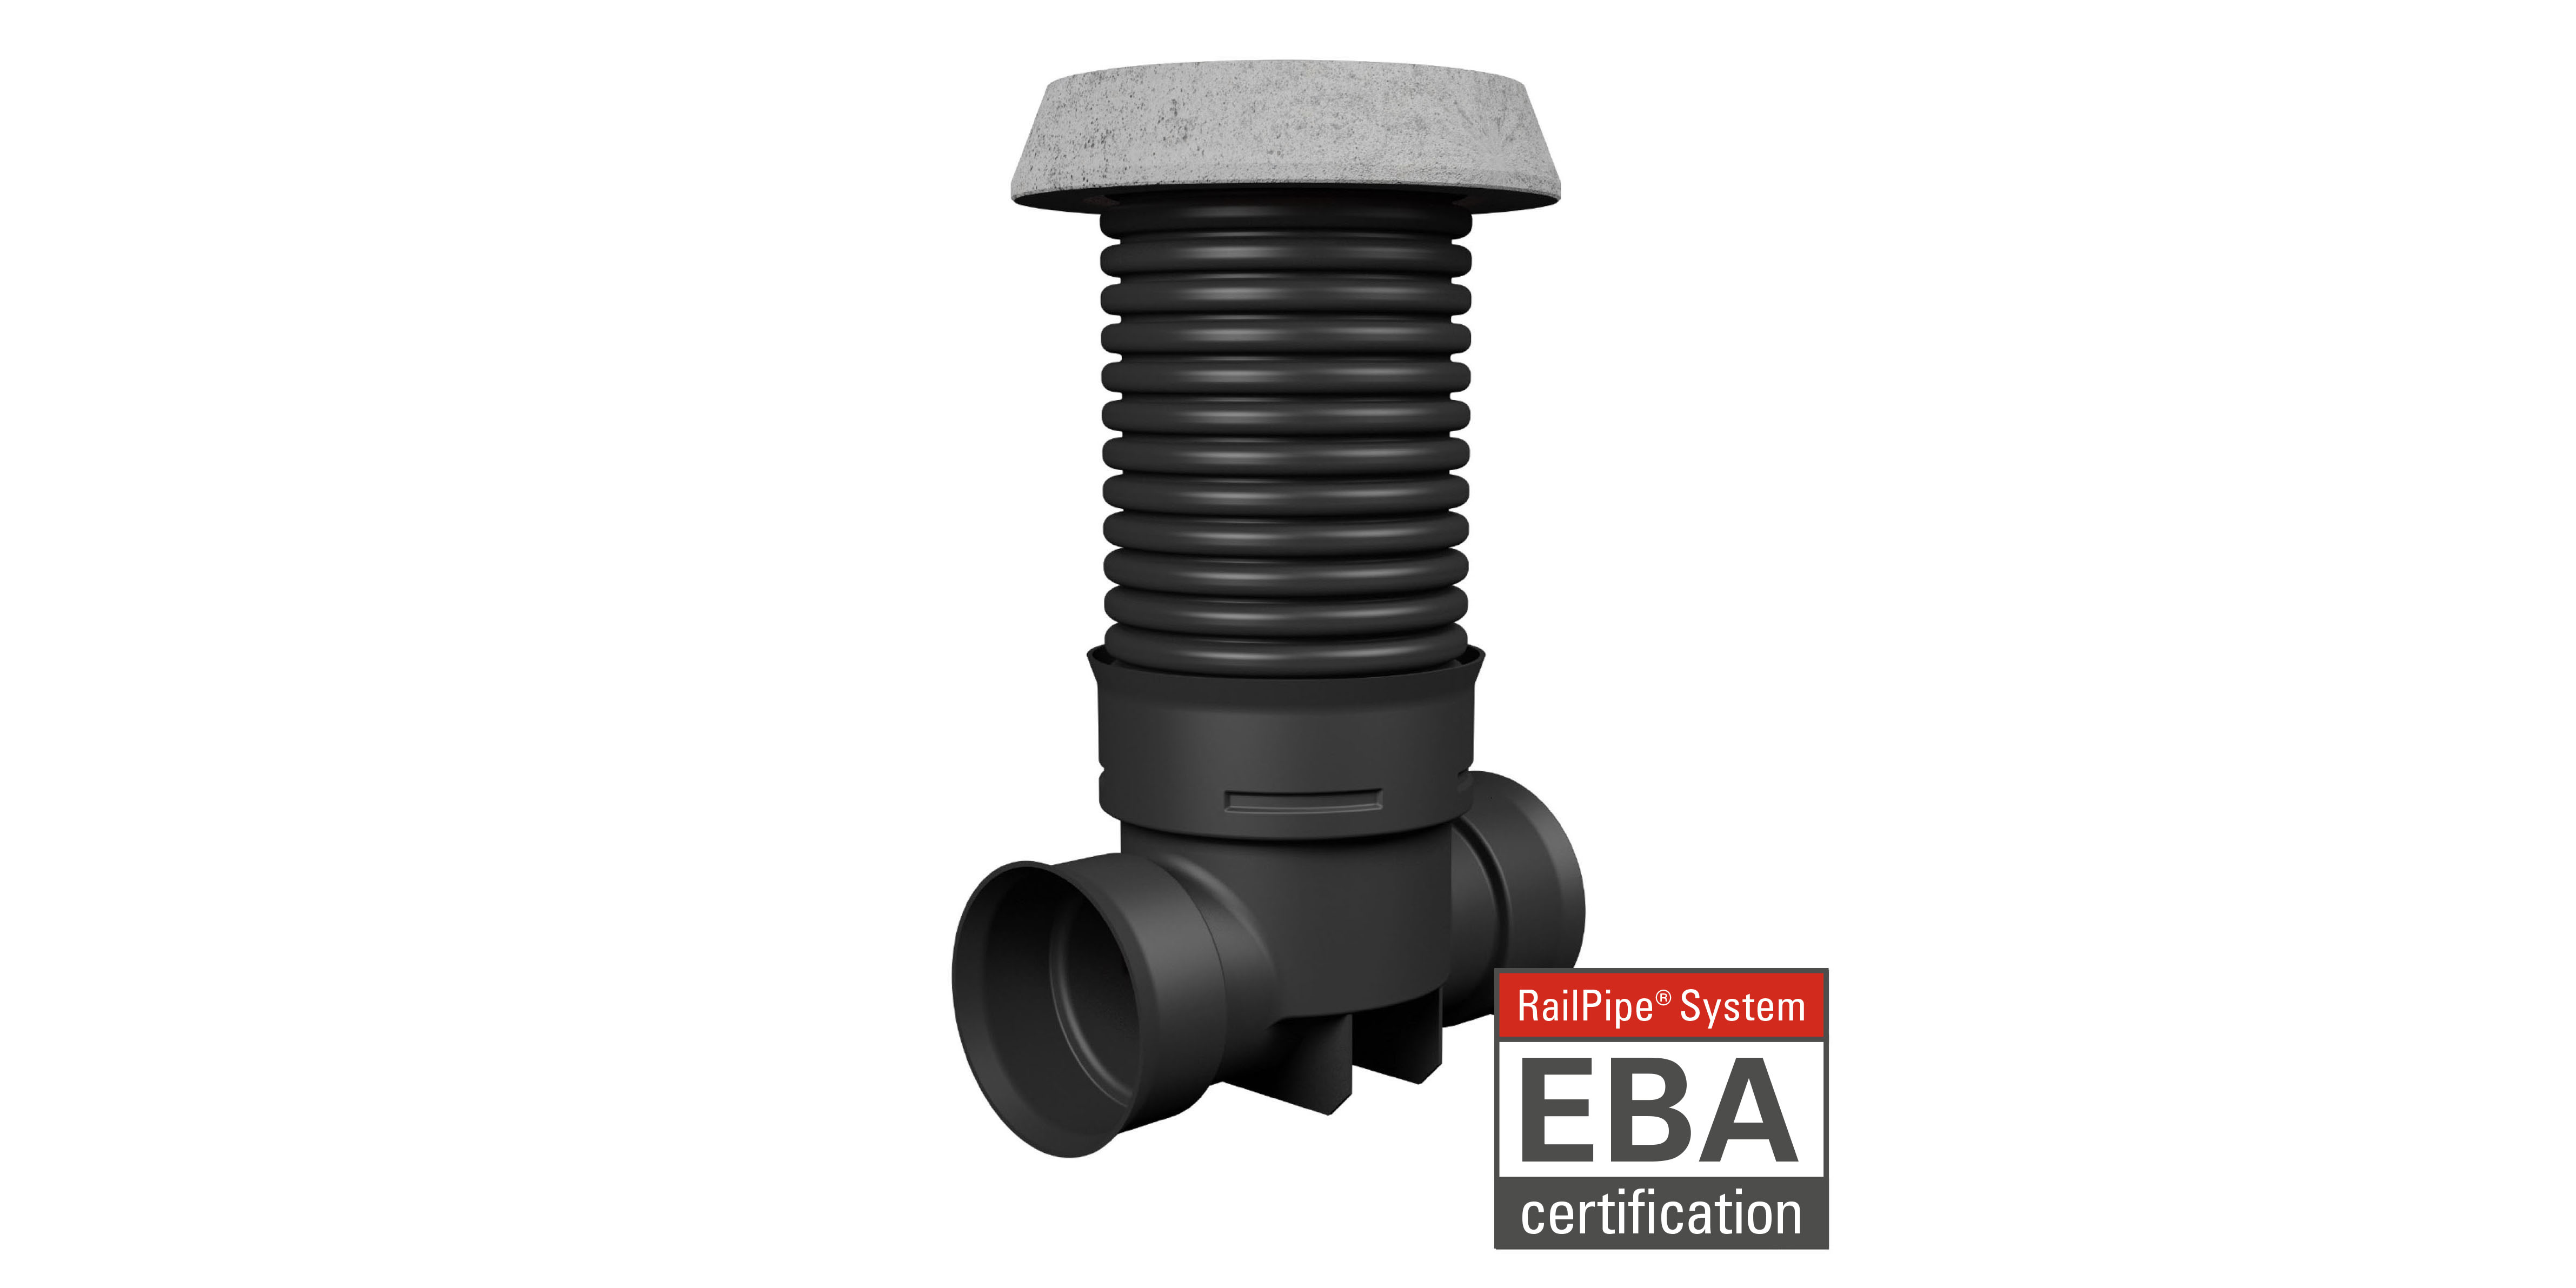 RailControl EBA Certification Railpipe